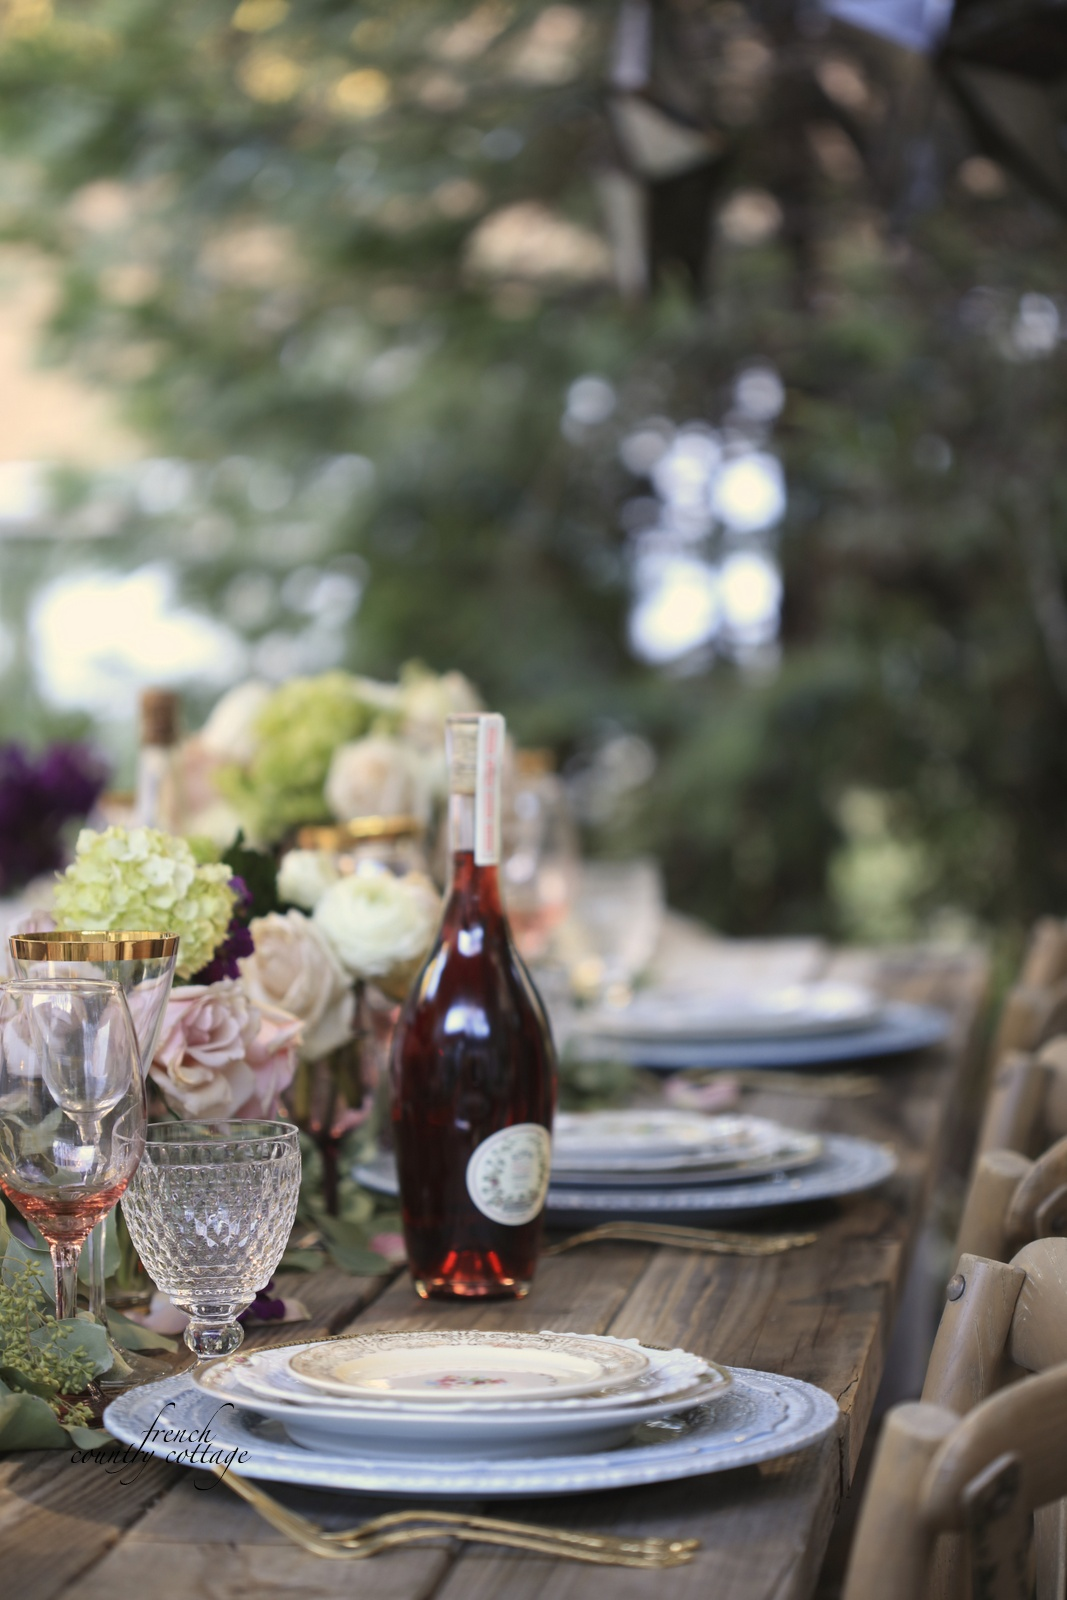 rustic table setting outdoors with vintage plates and flowers & Mix \u0026 Mingle~ Vintage place settings - FRENCH COUNTRY COTTAGE